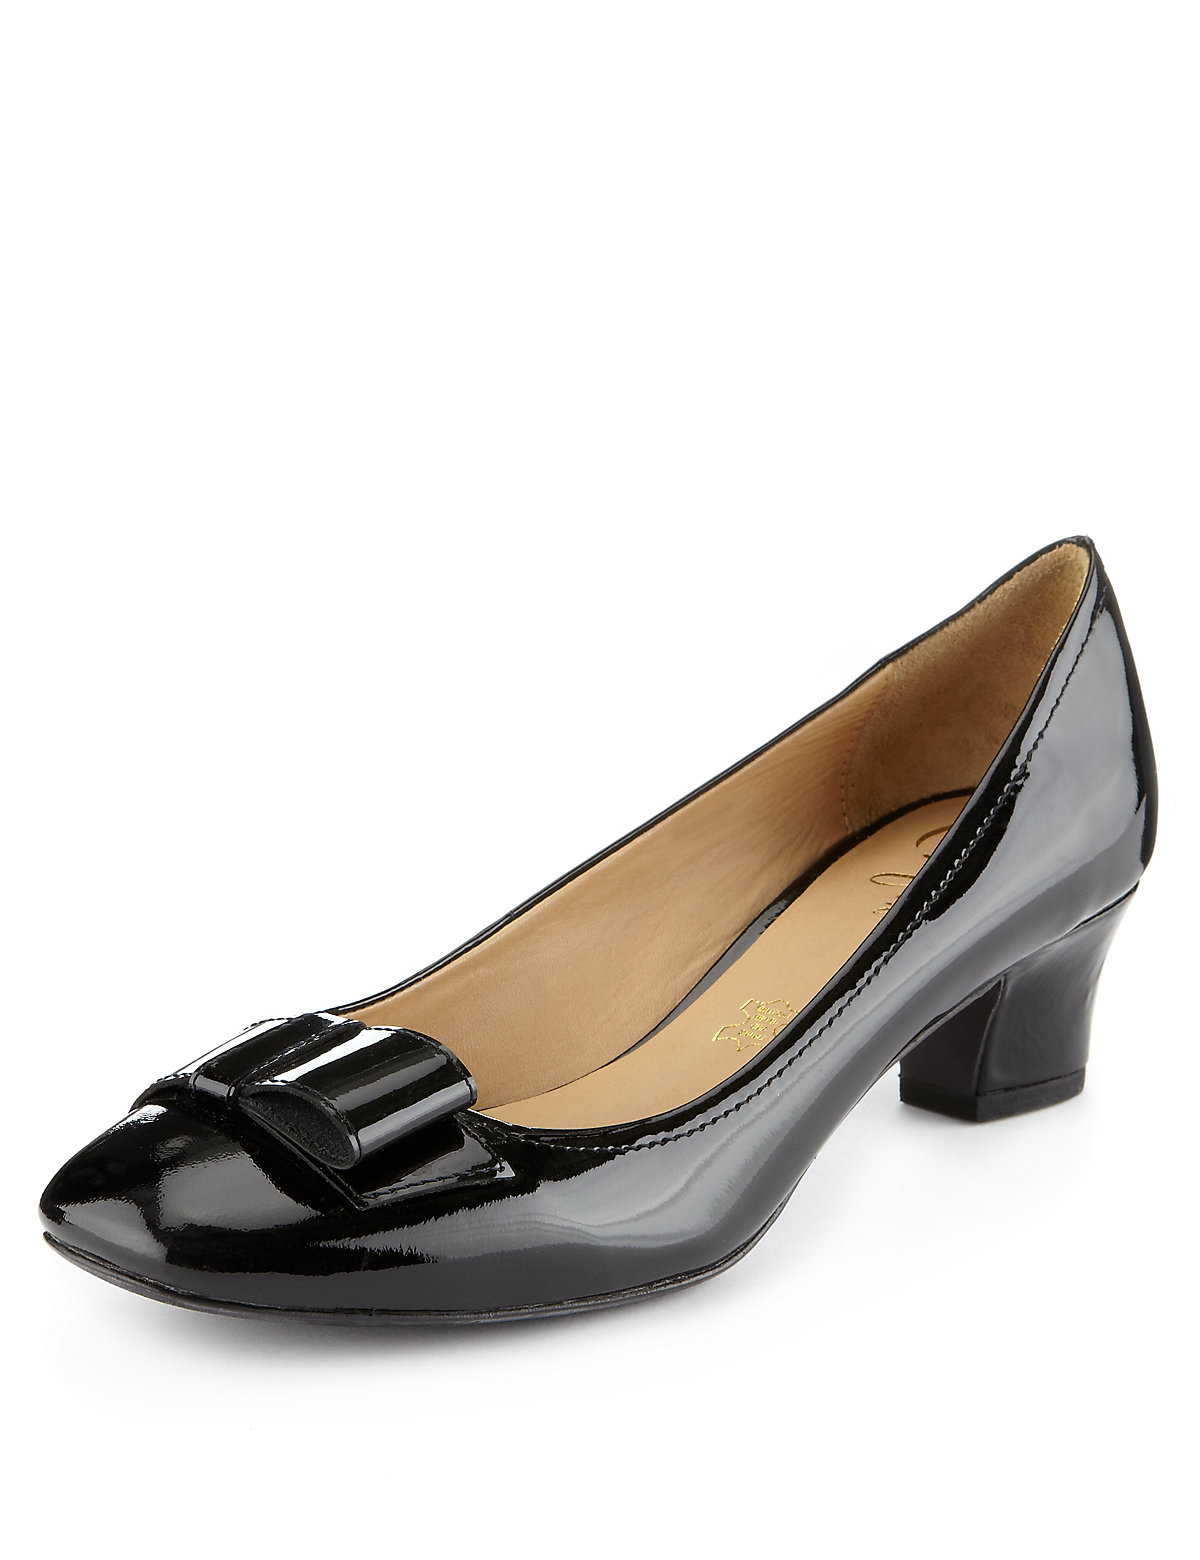 Footglove Leather Square Toe Court Shoes